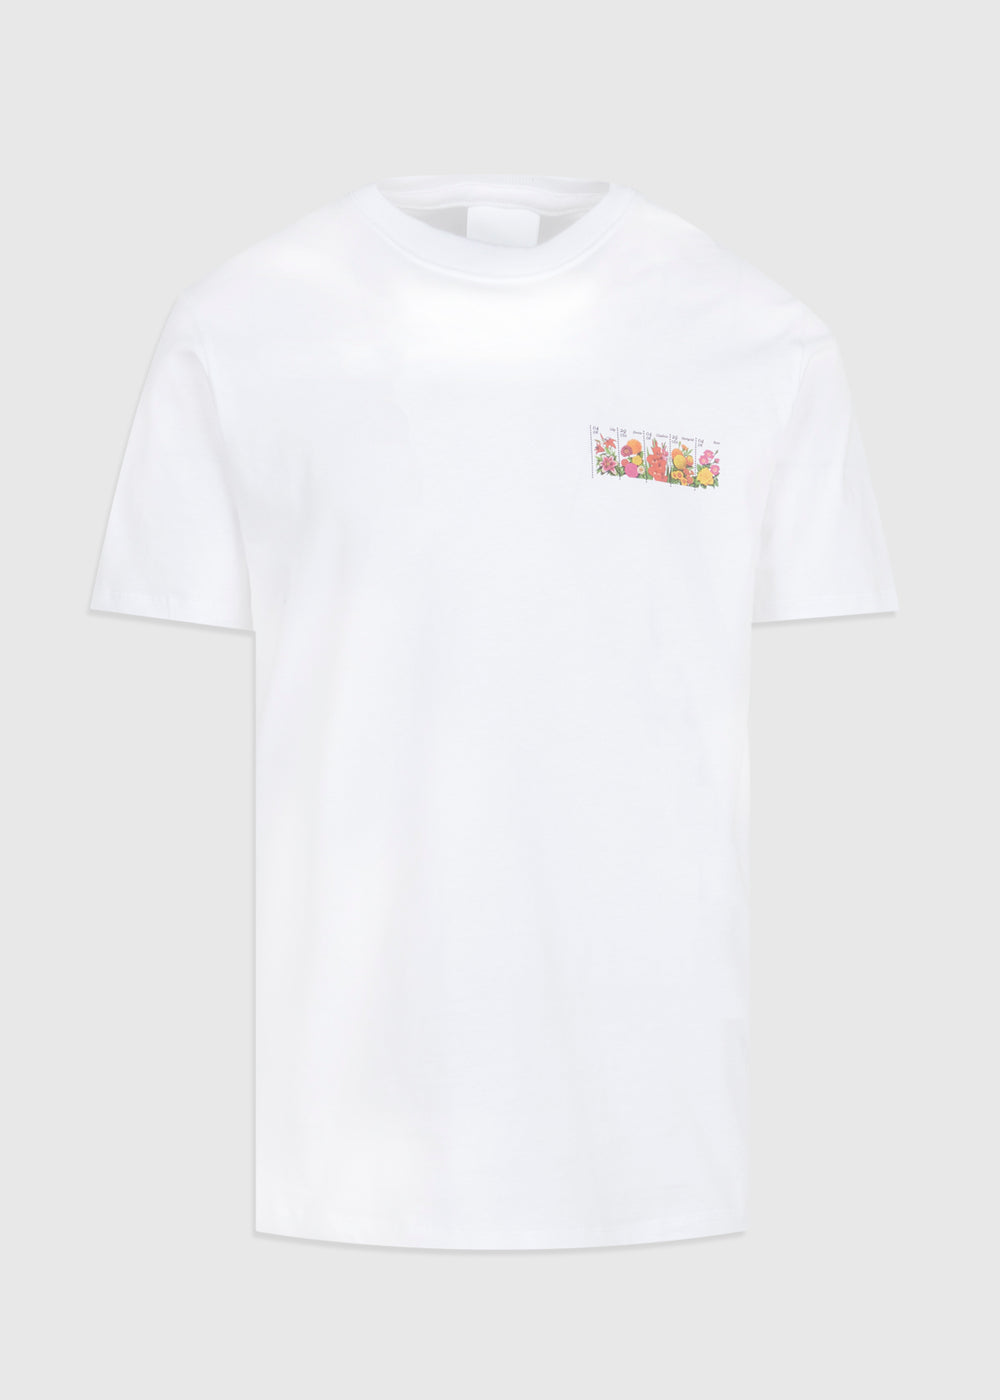 soul-land-soulland-rossell-tee-1000-rossell-wht-wht-1